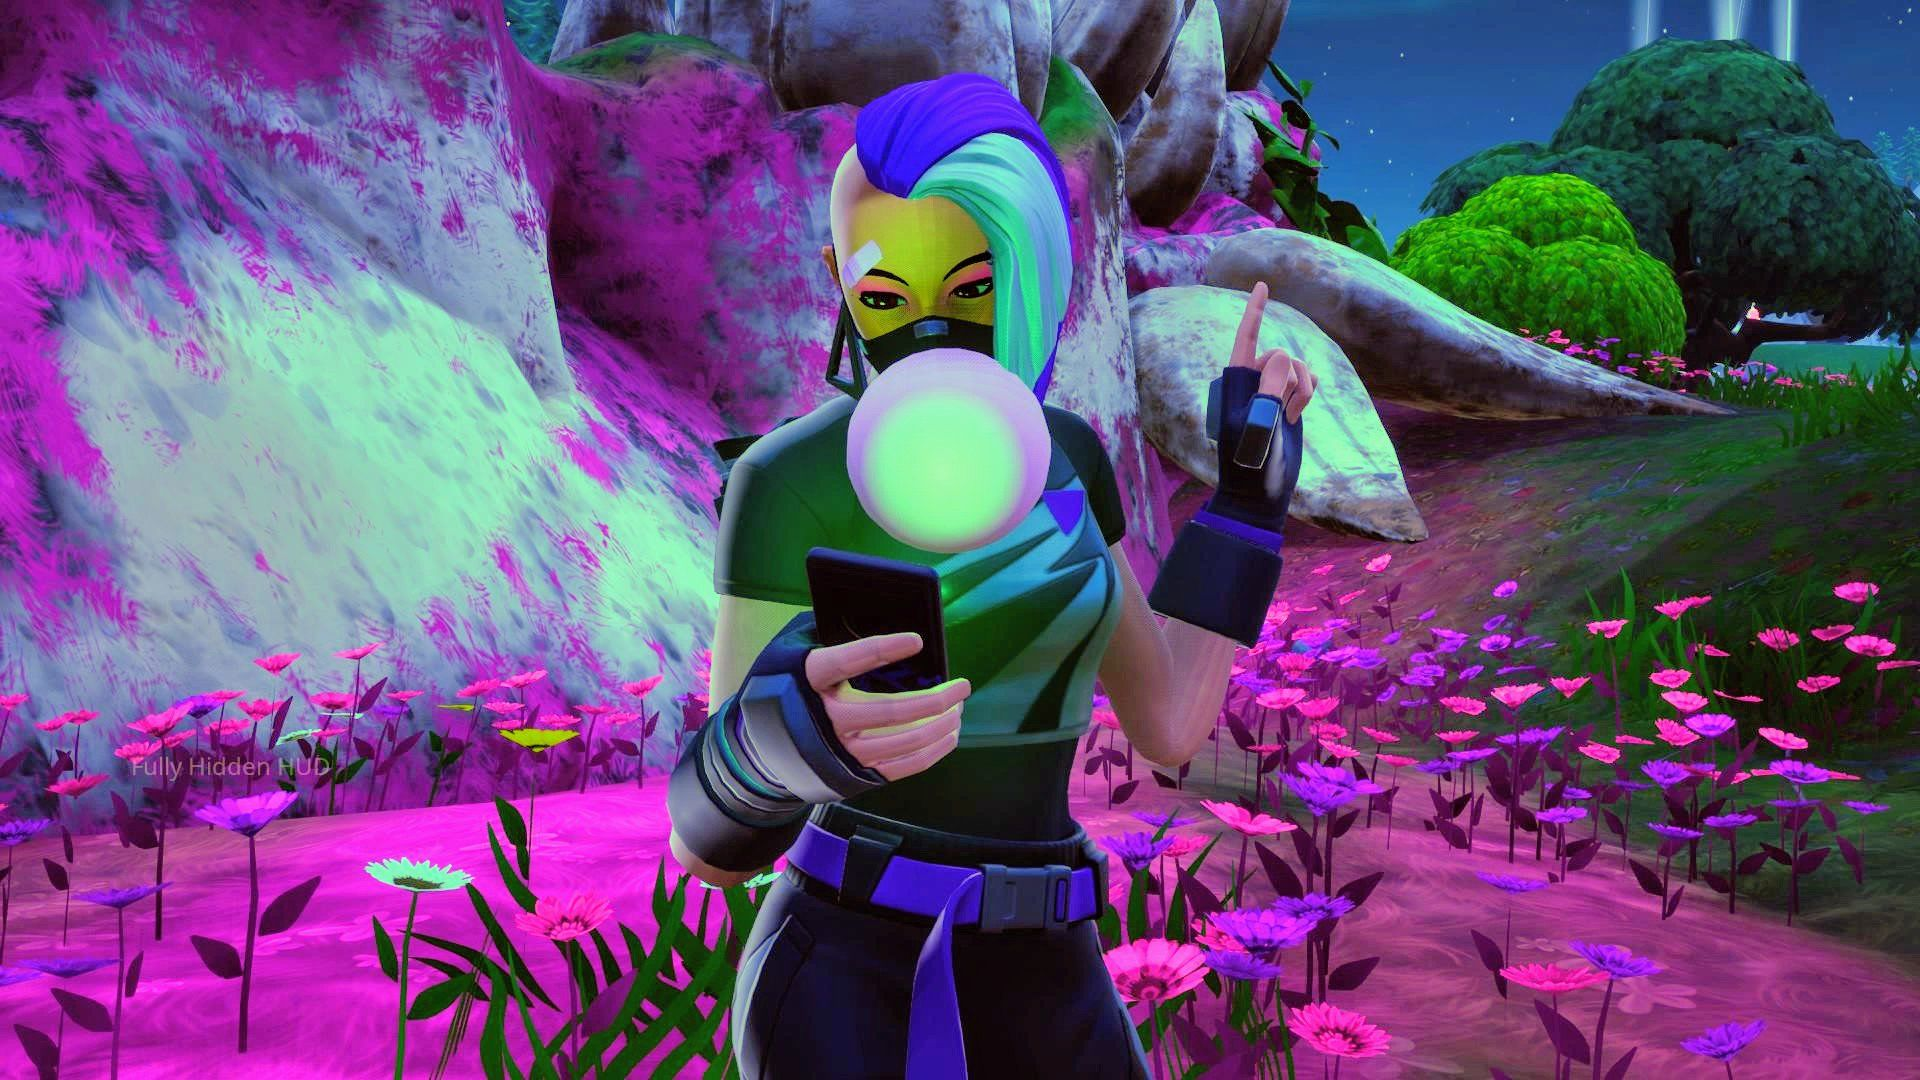 Pin by 💜🌼Carlee🌼💜 on Catalyst Epic games fortnite